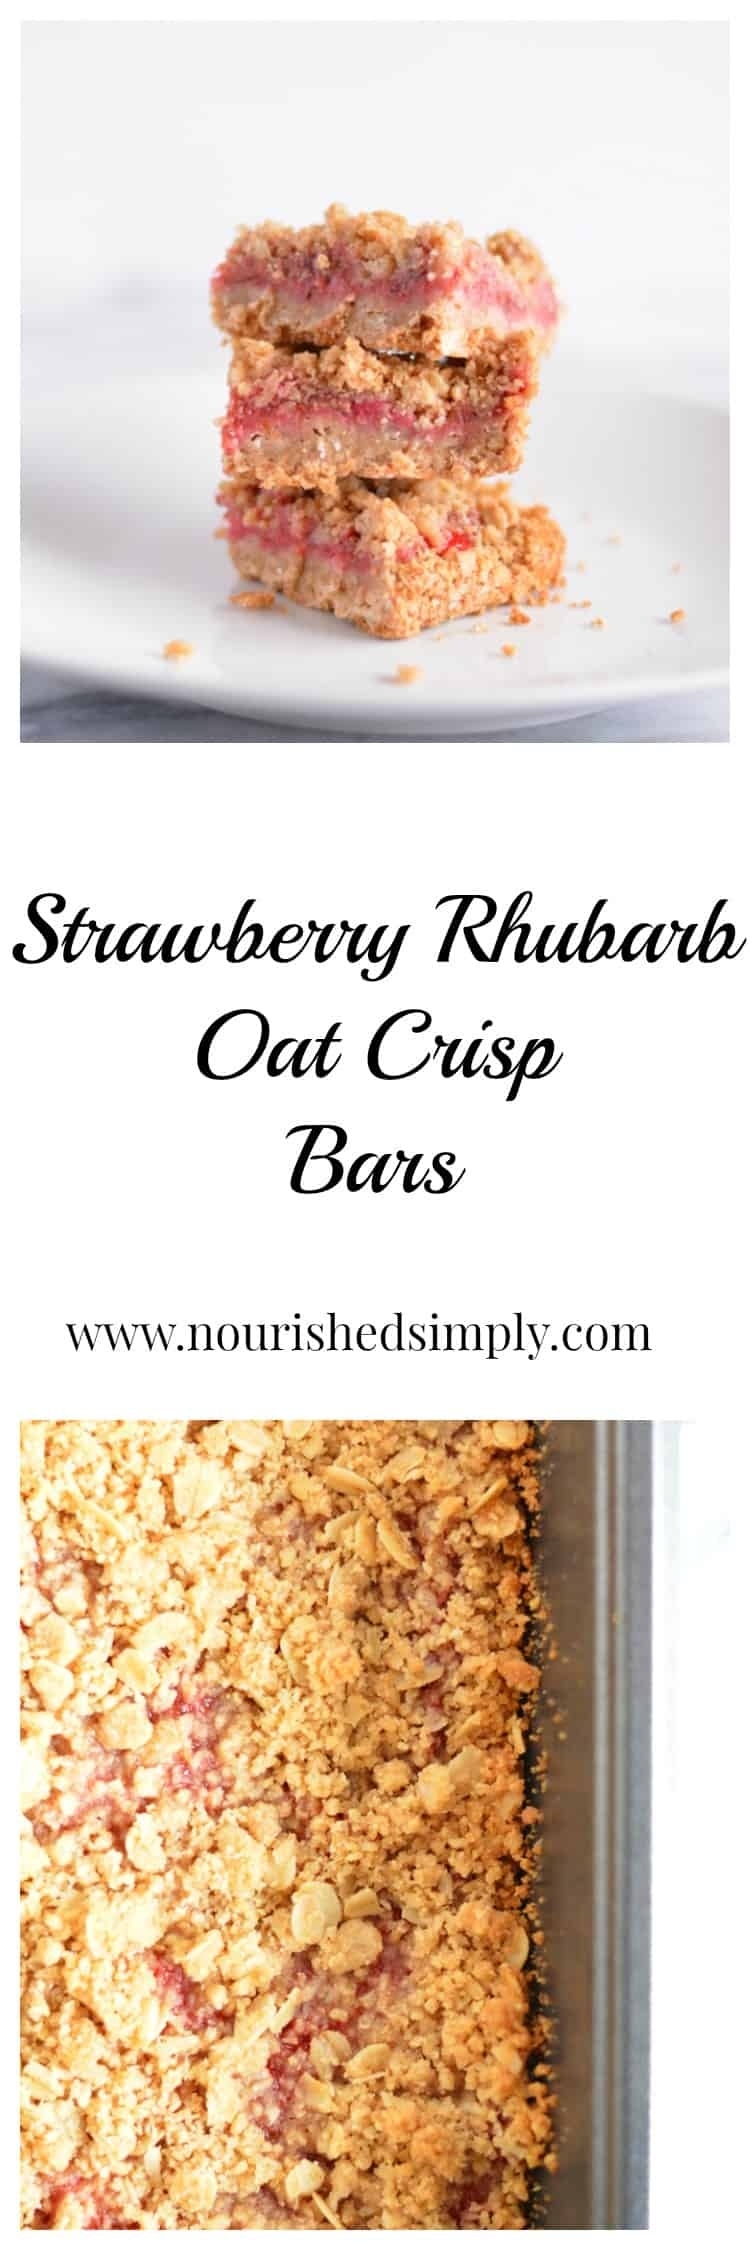 Strawberry Rhubarb Oat Crisp Bars are full of fiber with oats, oat bran, and chia seeds!